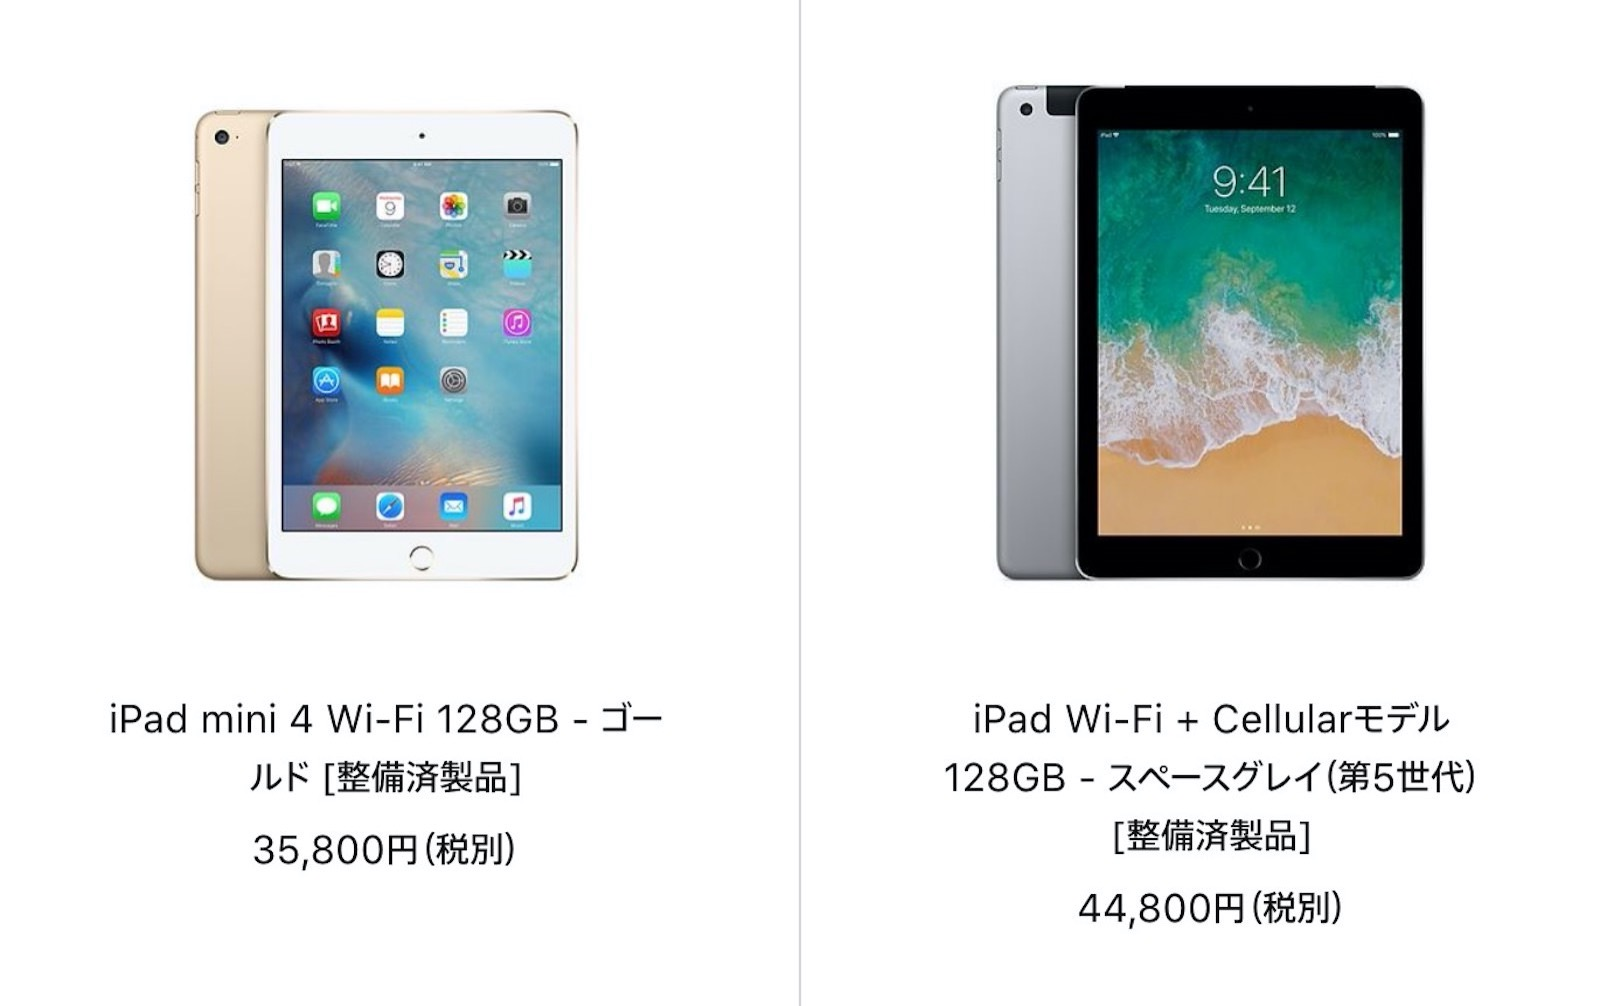 Ipad mini 4 is on sale